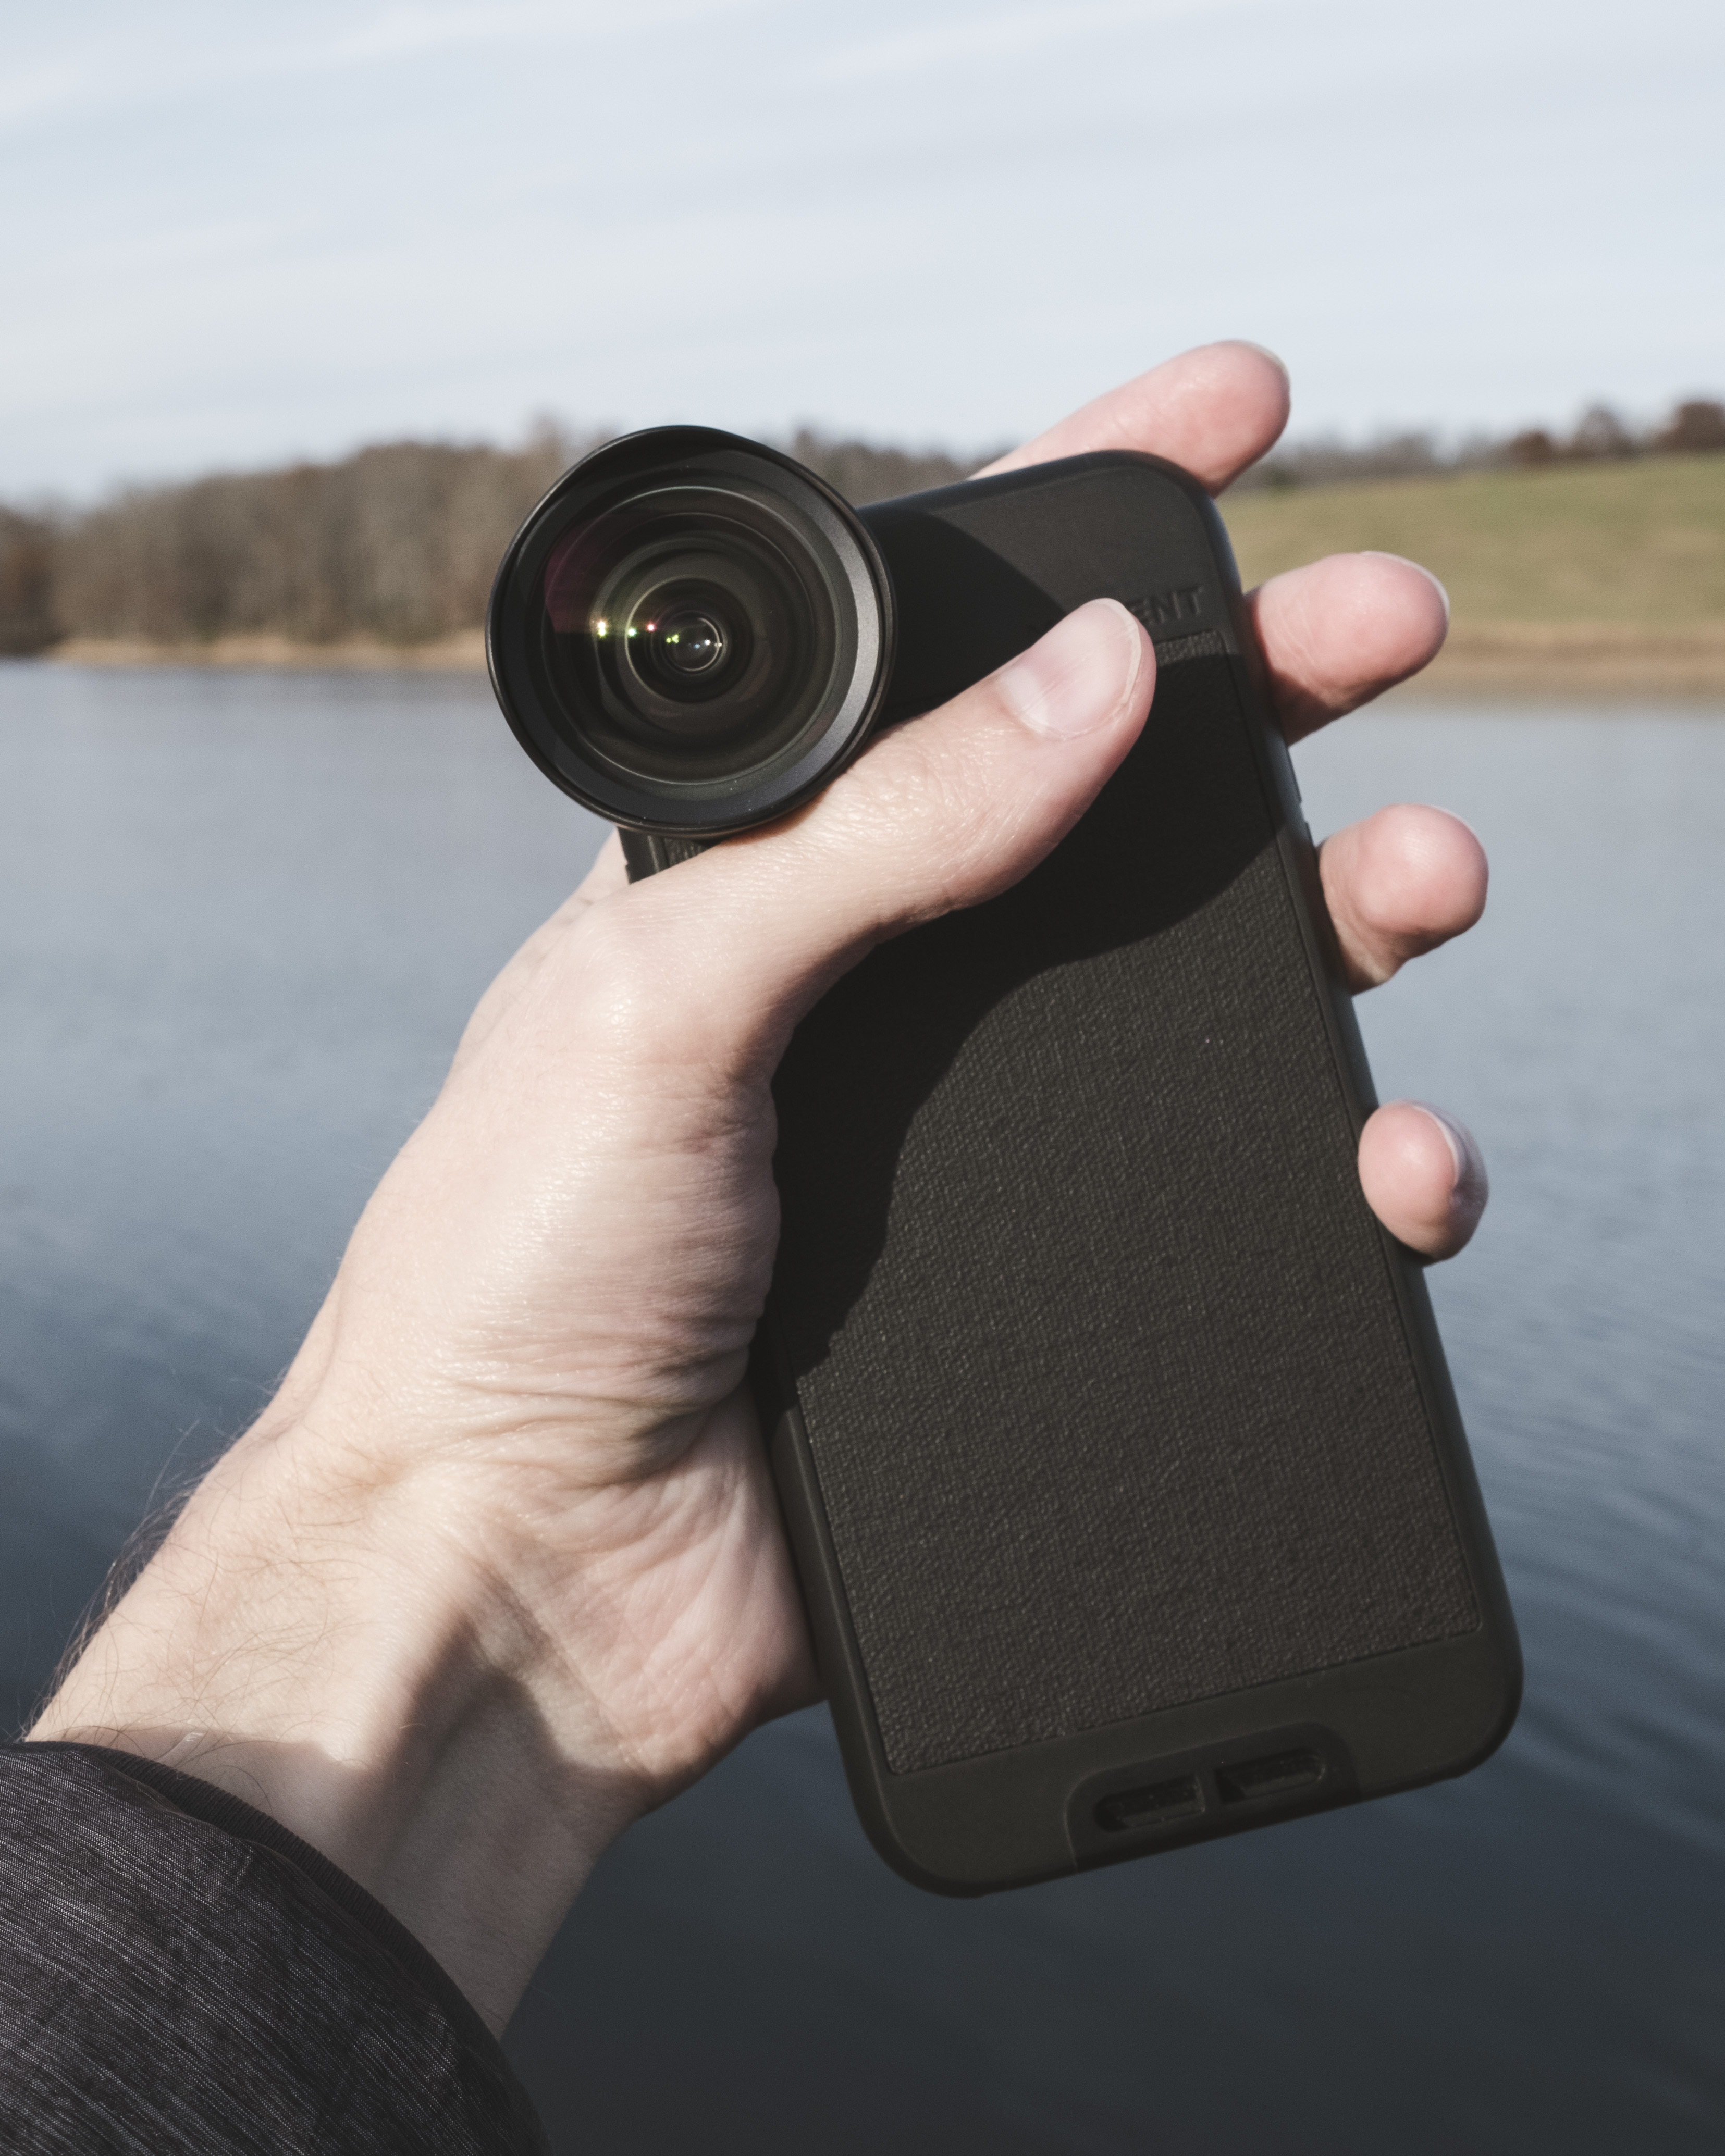 low priced 174c2 17a49 iPhone 8 Moment Lens Review: I went w/ the